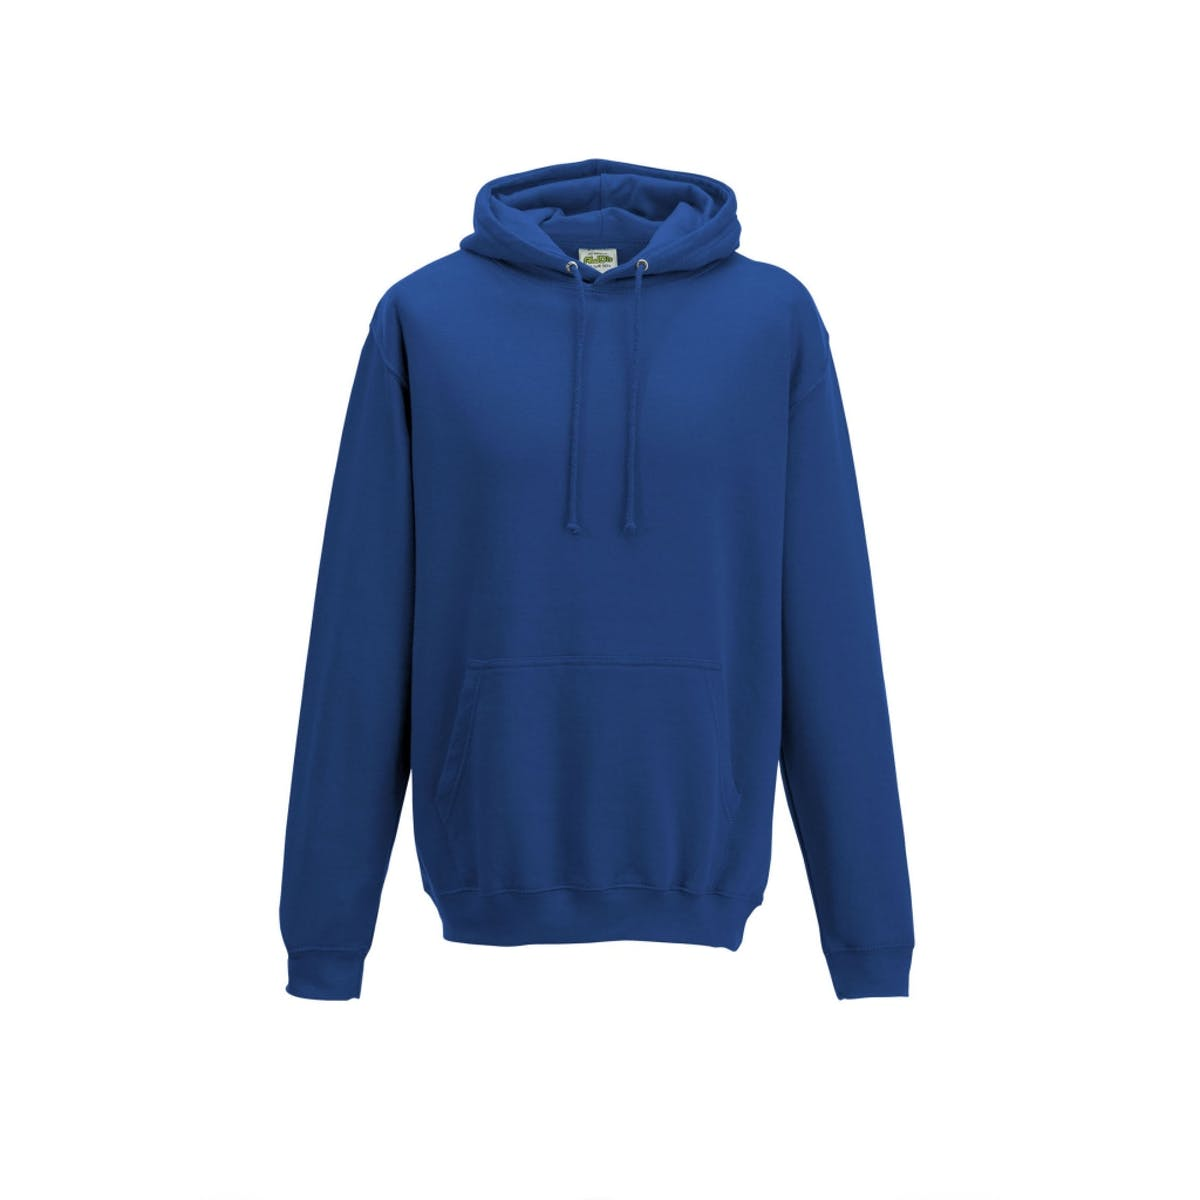 royal blue college hoodies